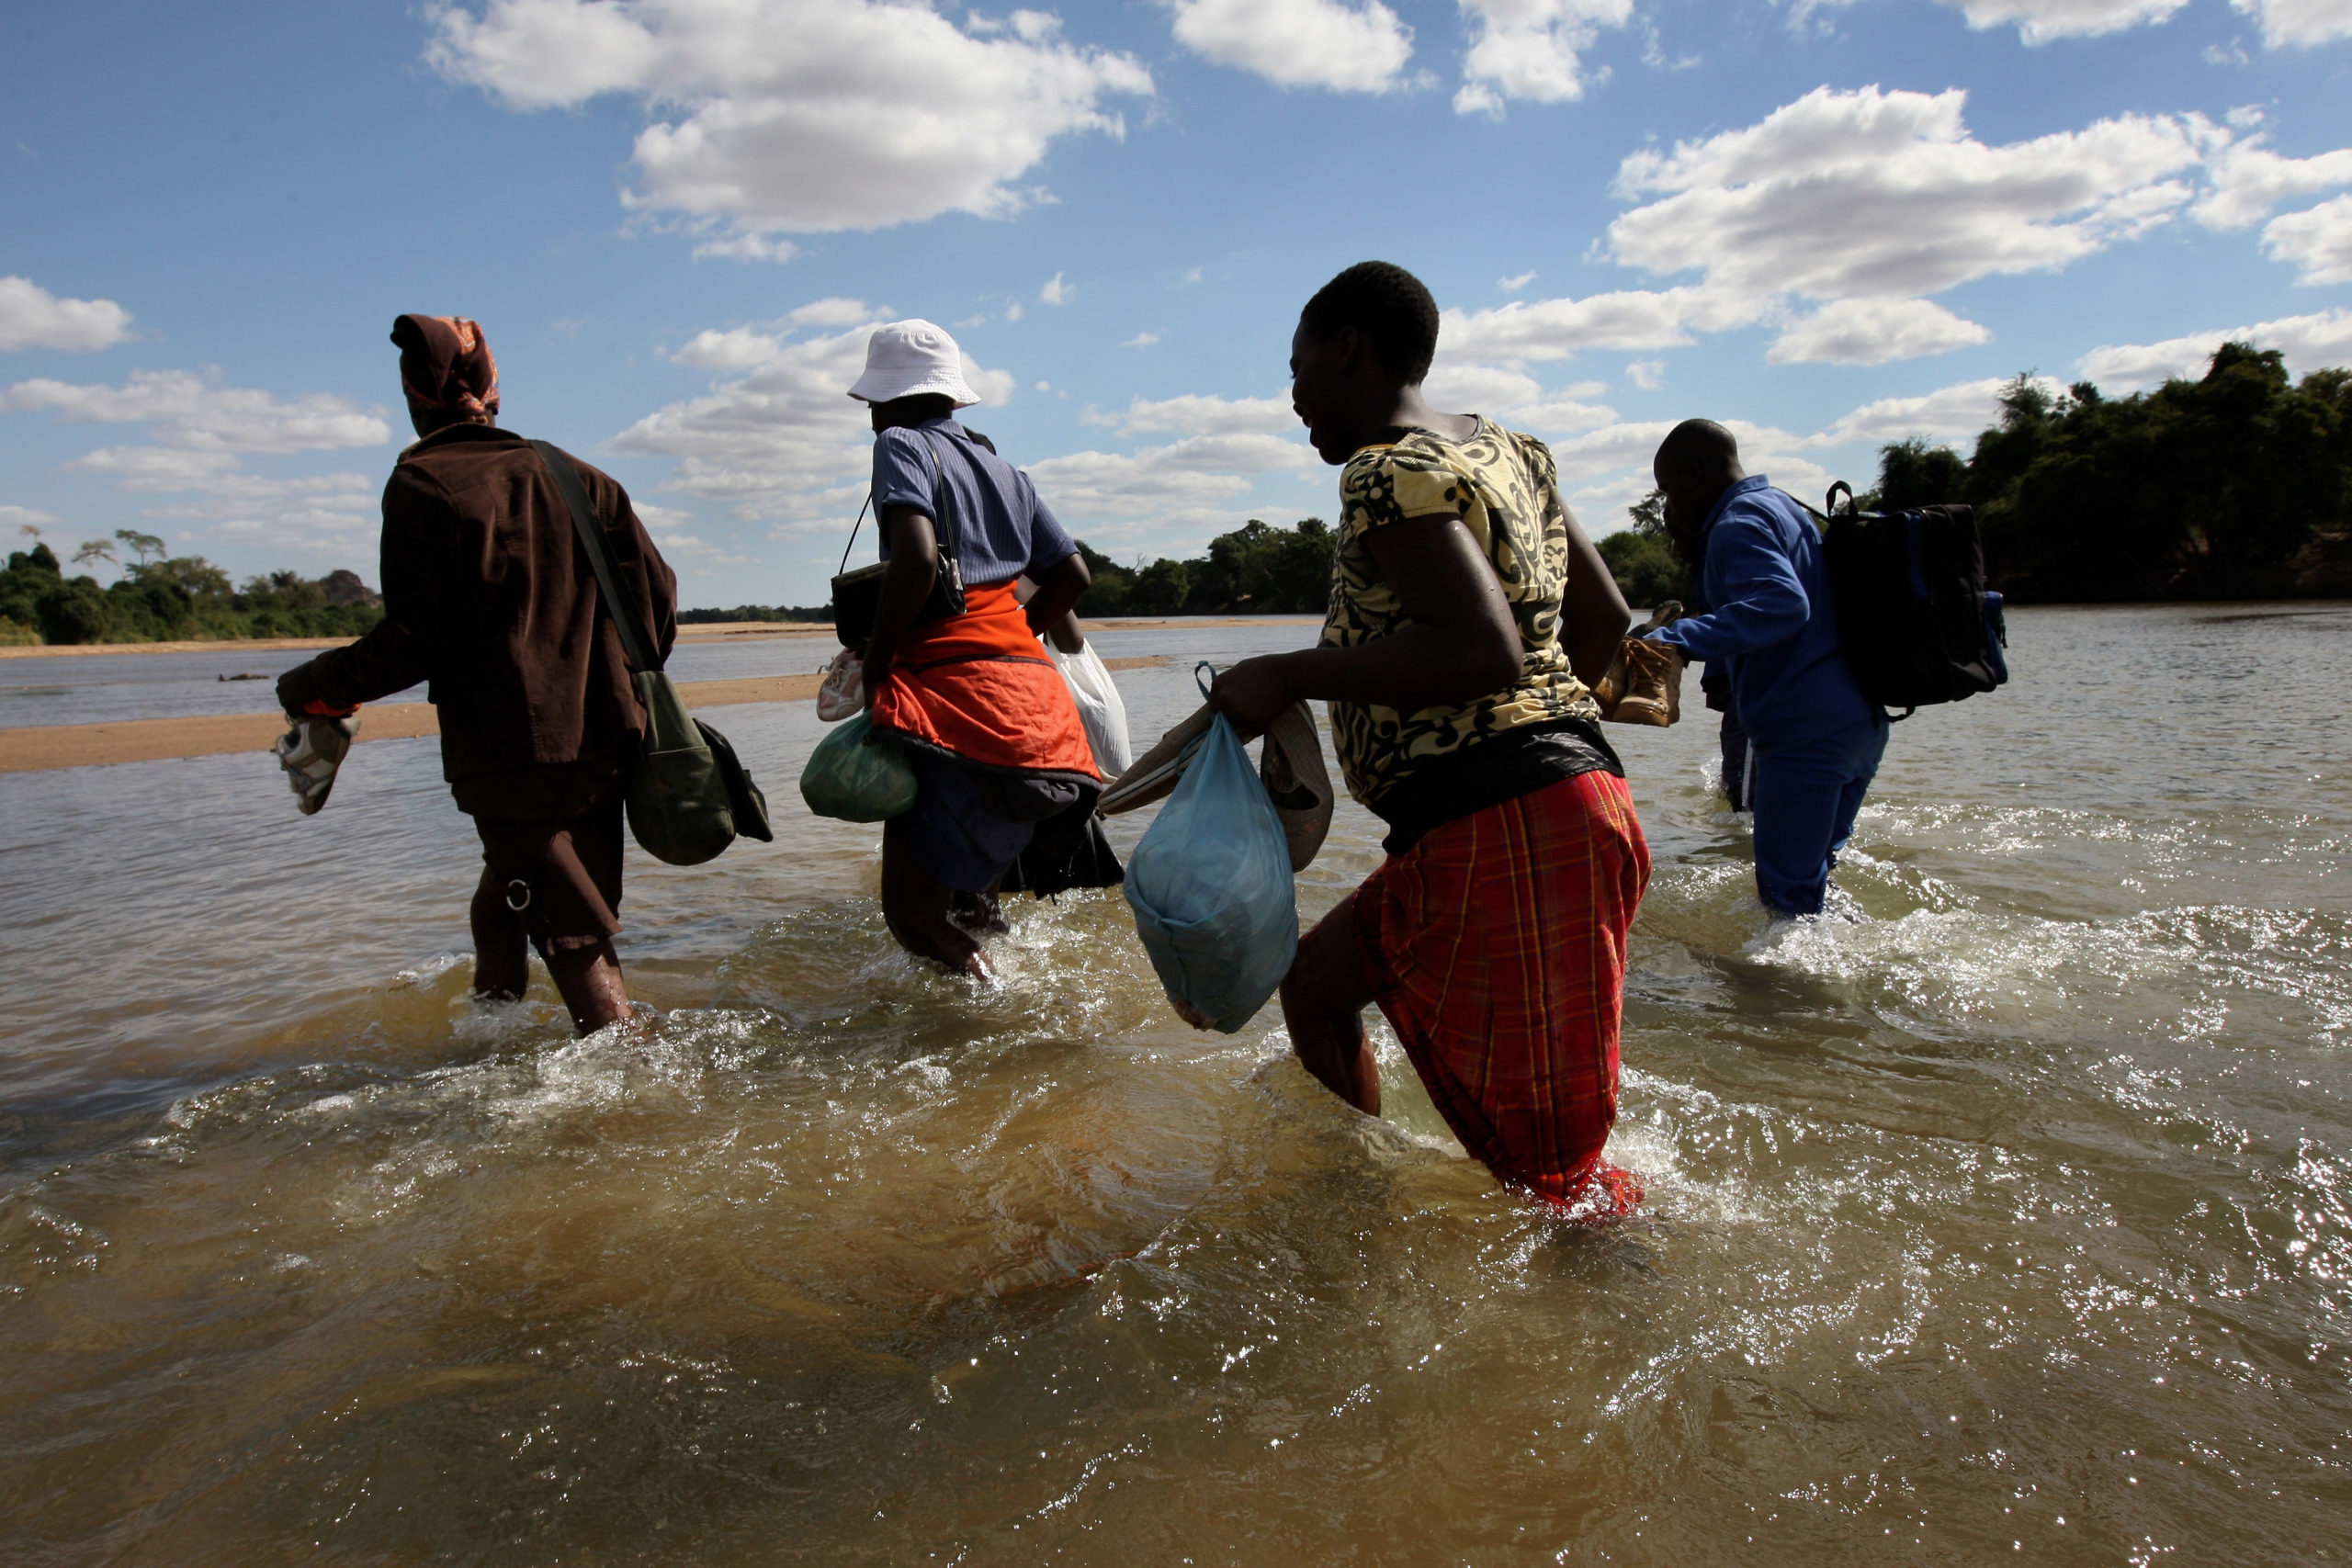 Hardships driving Zimbabweans to flee the country